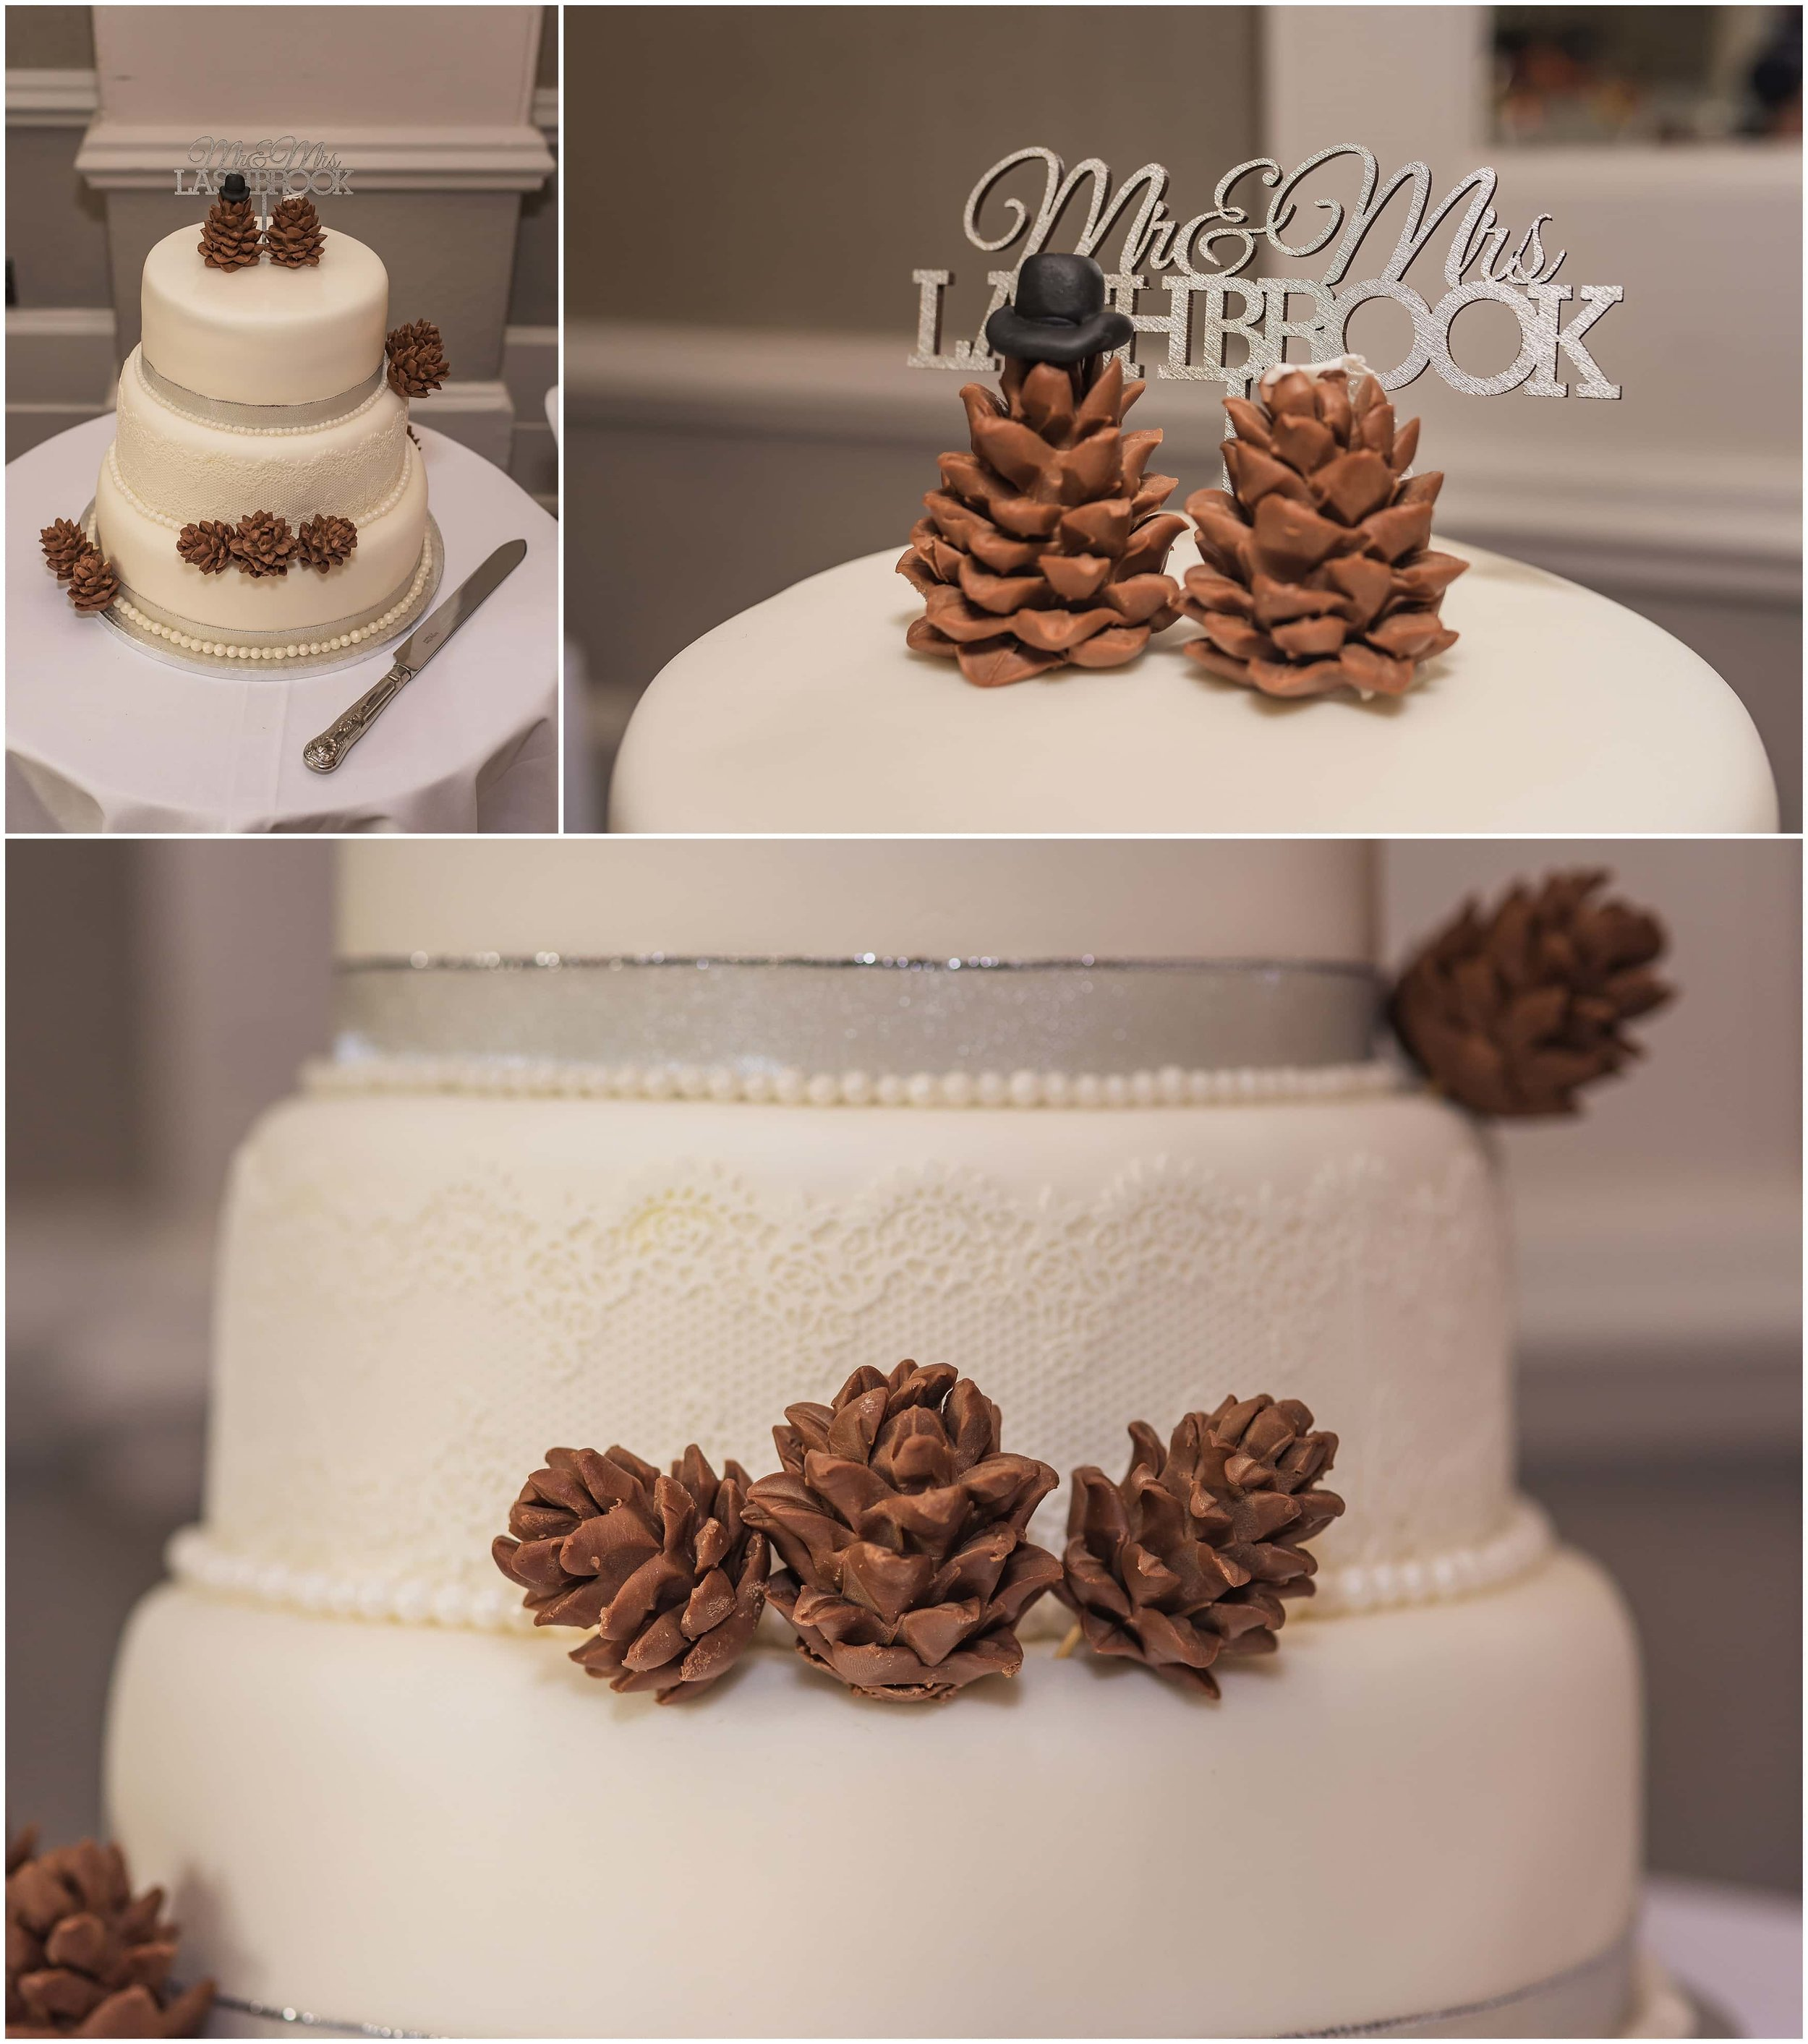 Pine cone themed wedding cake for autumn Surrey wedding